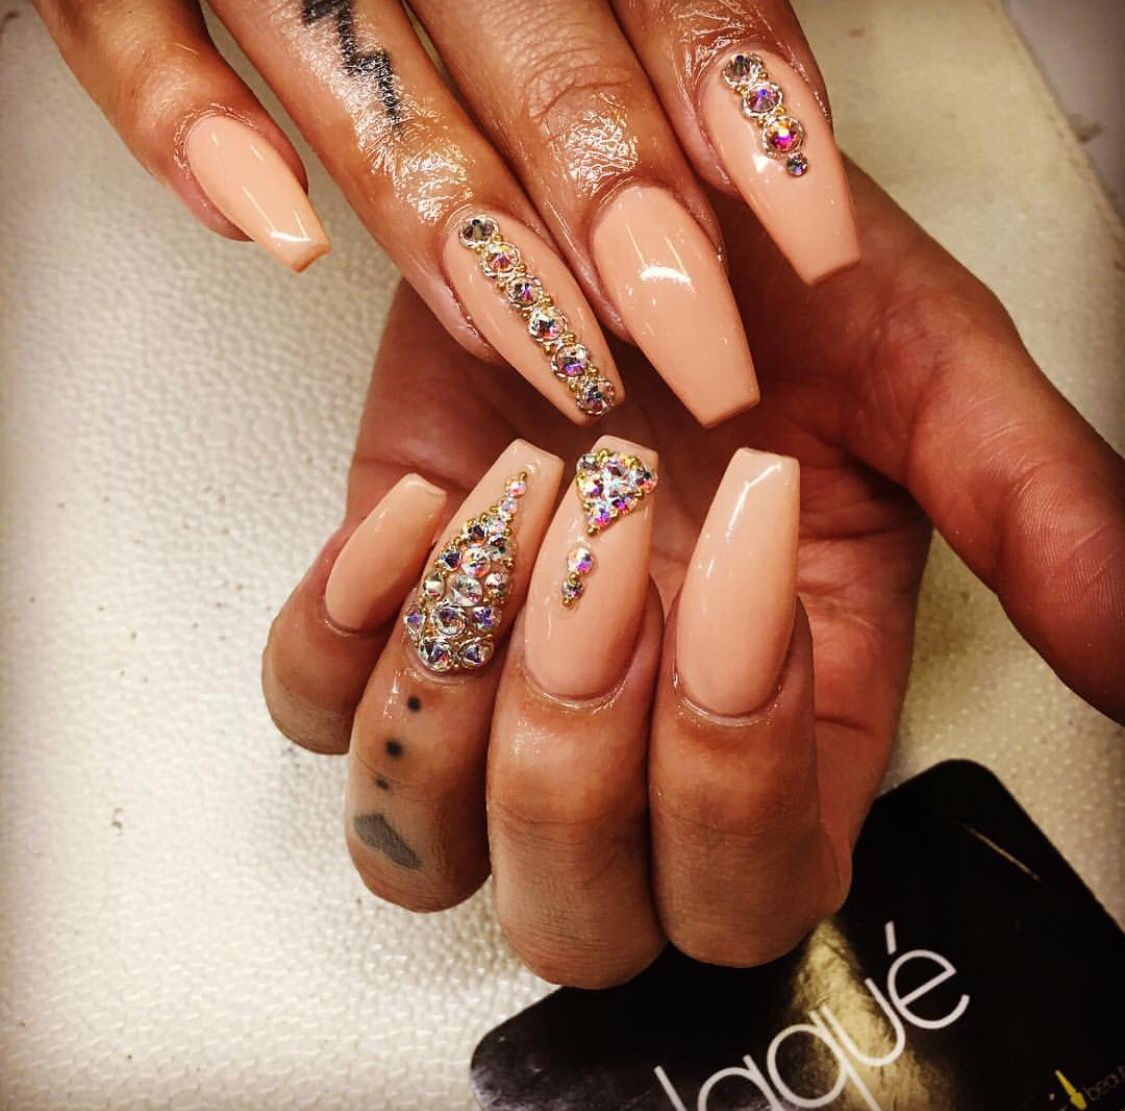 Love the stone design on these fab nails - Love The Stone Design On These Fab Nails Artsy Fartsy Nails